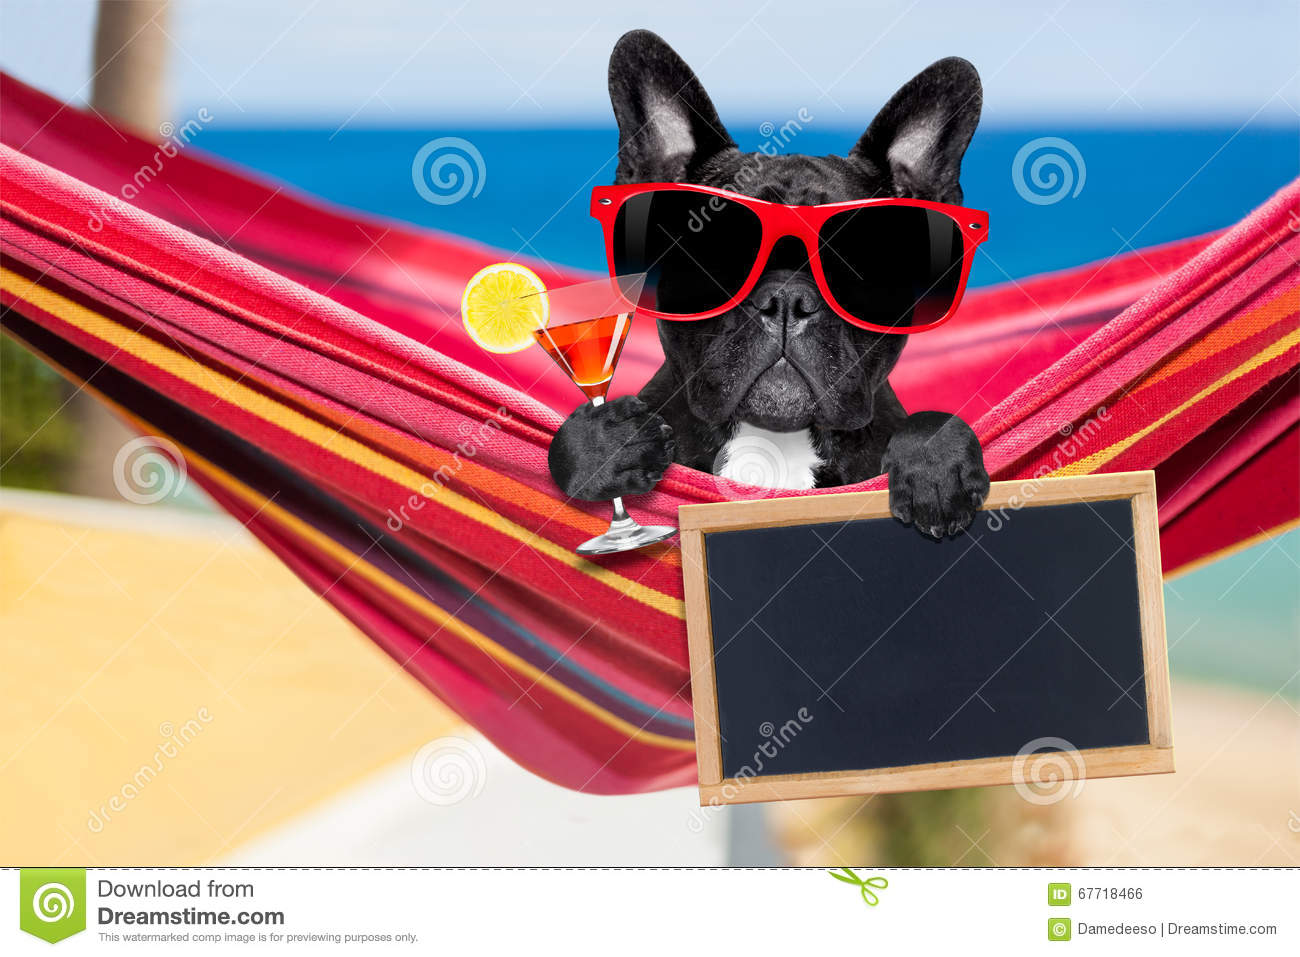 Dog on hammock in summer Royalty Free Stock Image - Dog Hammock Stock Photos, Images, & Pictures - 349 Images